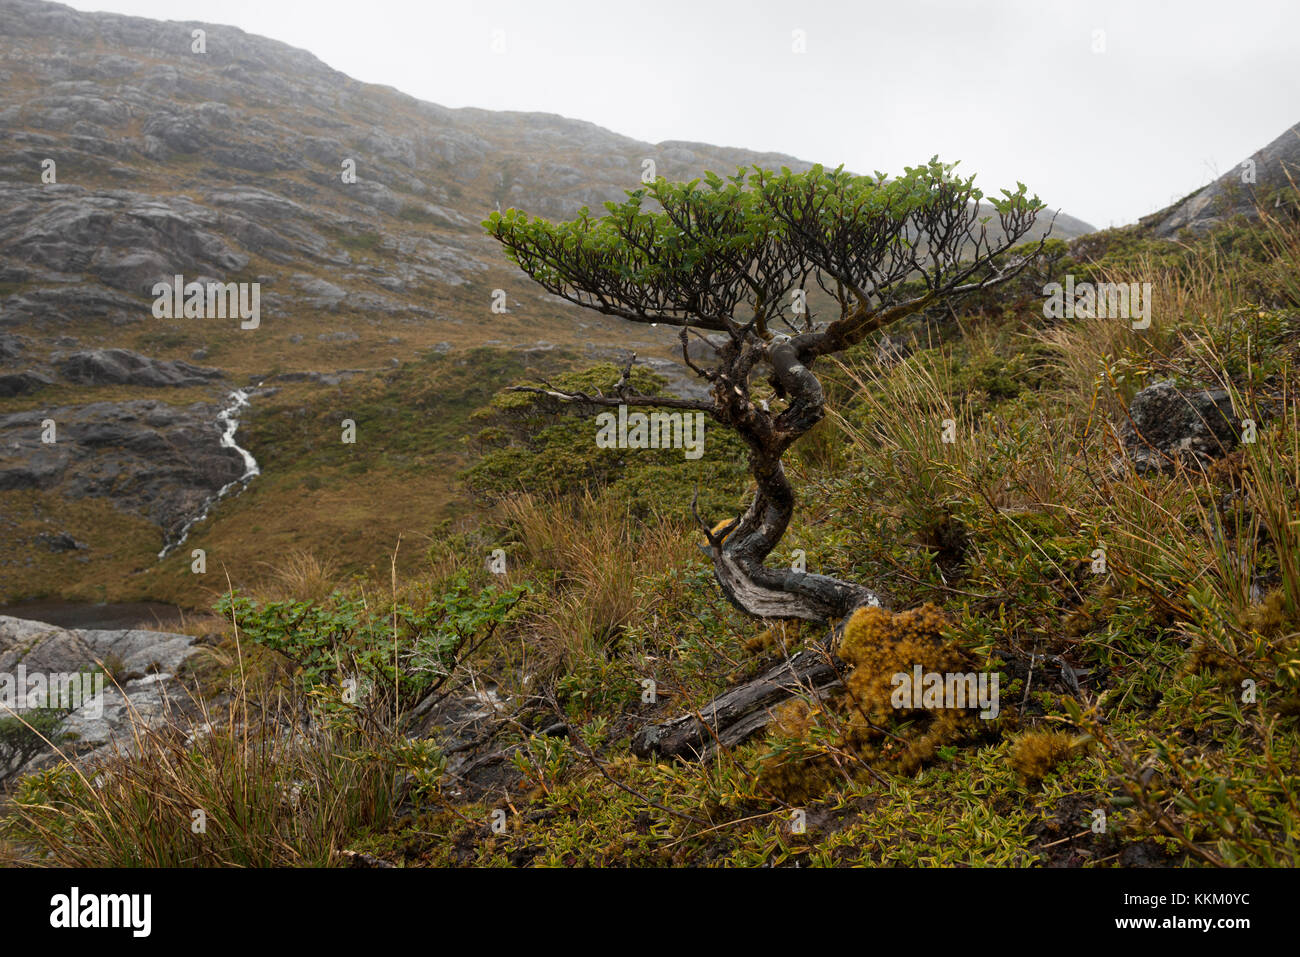 A wild bonsai tree growing on a remote island in the southern chilean fjords - Stock Image